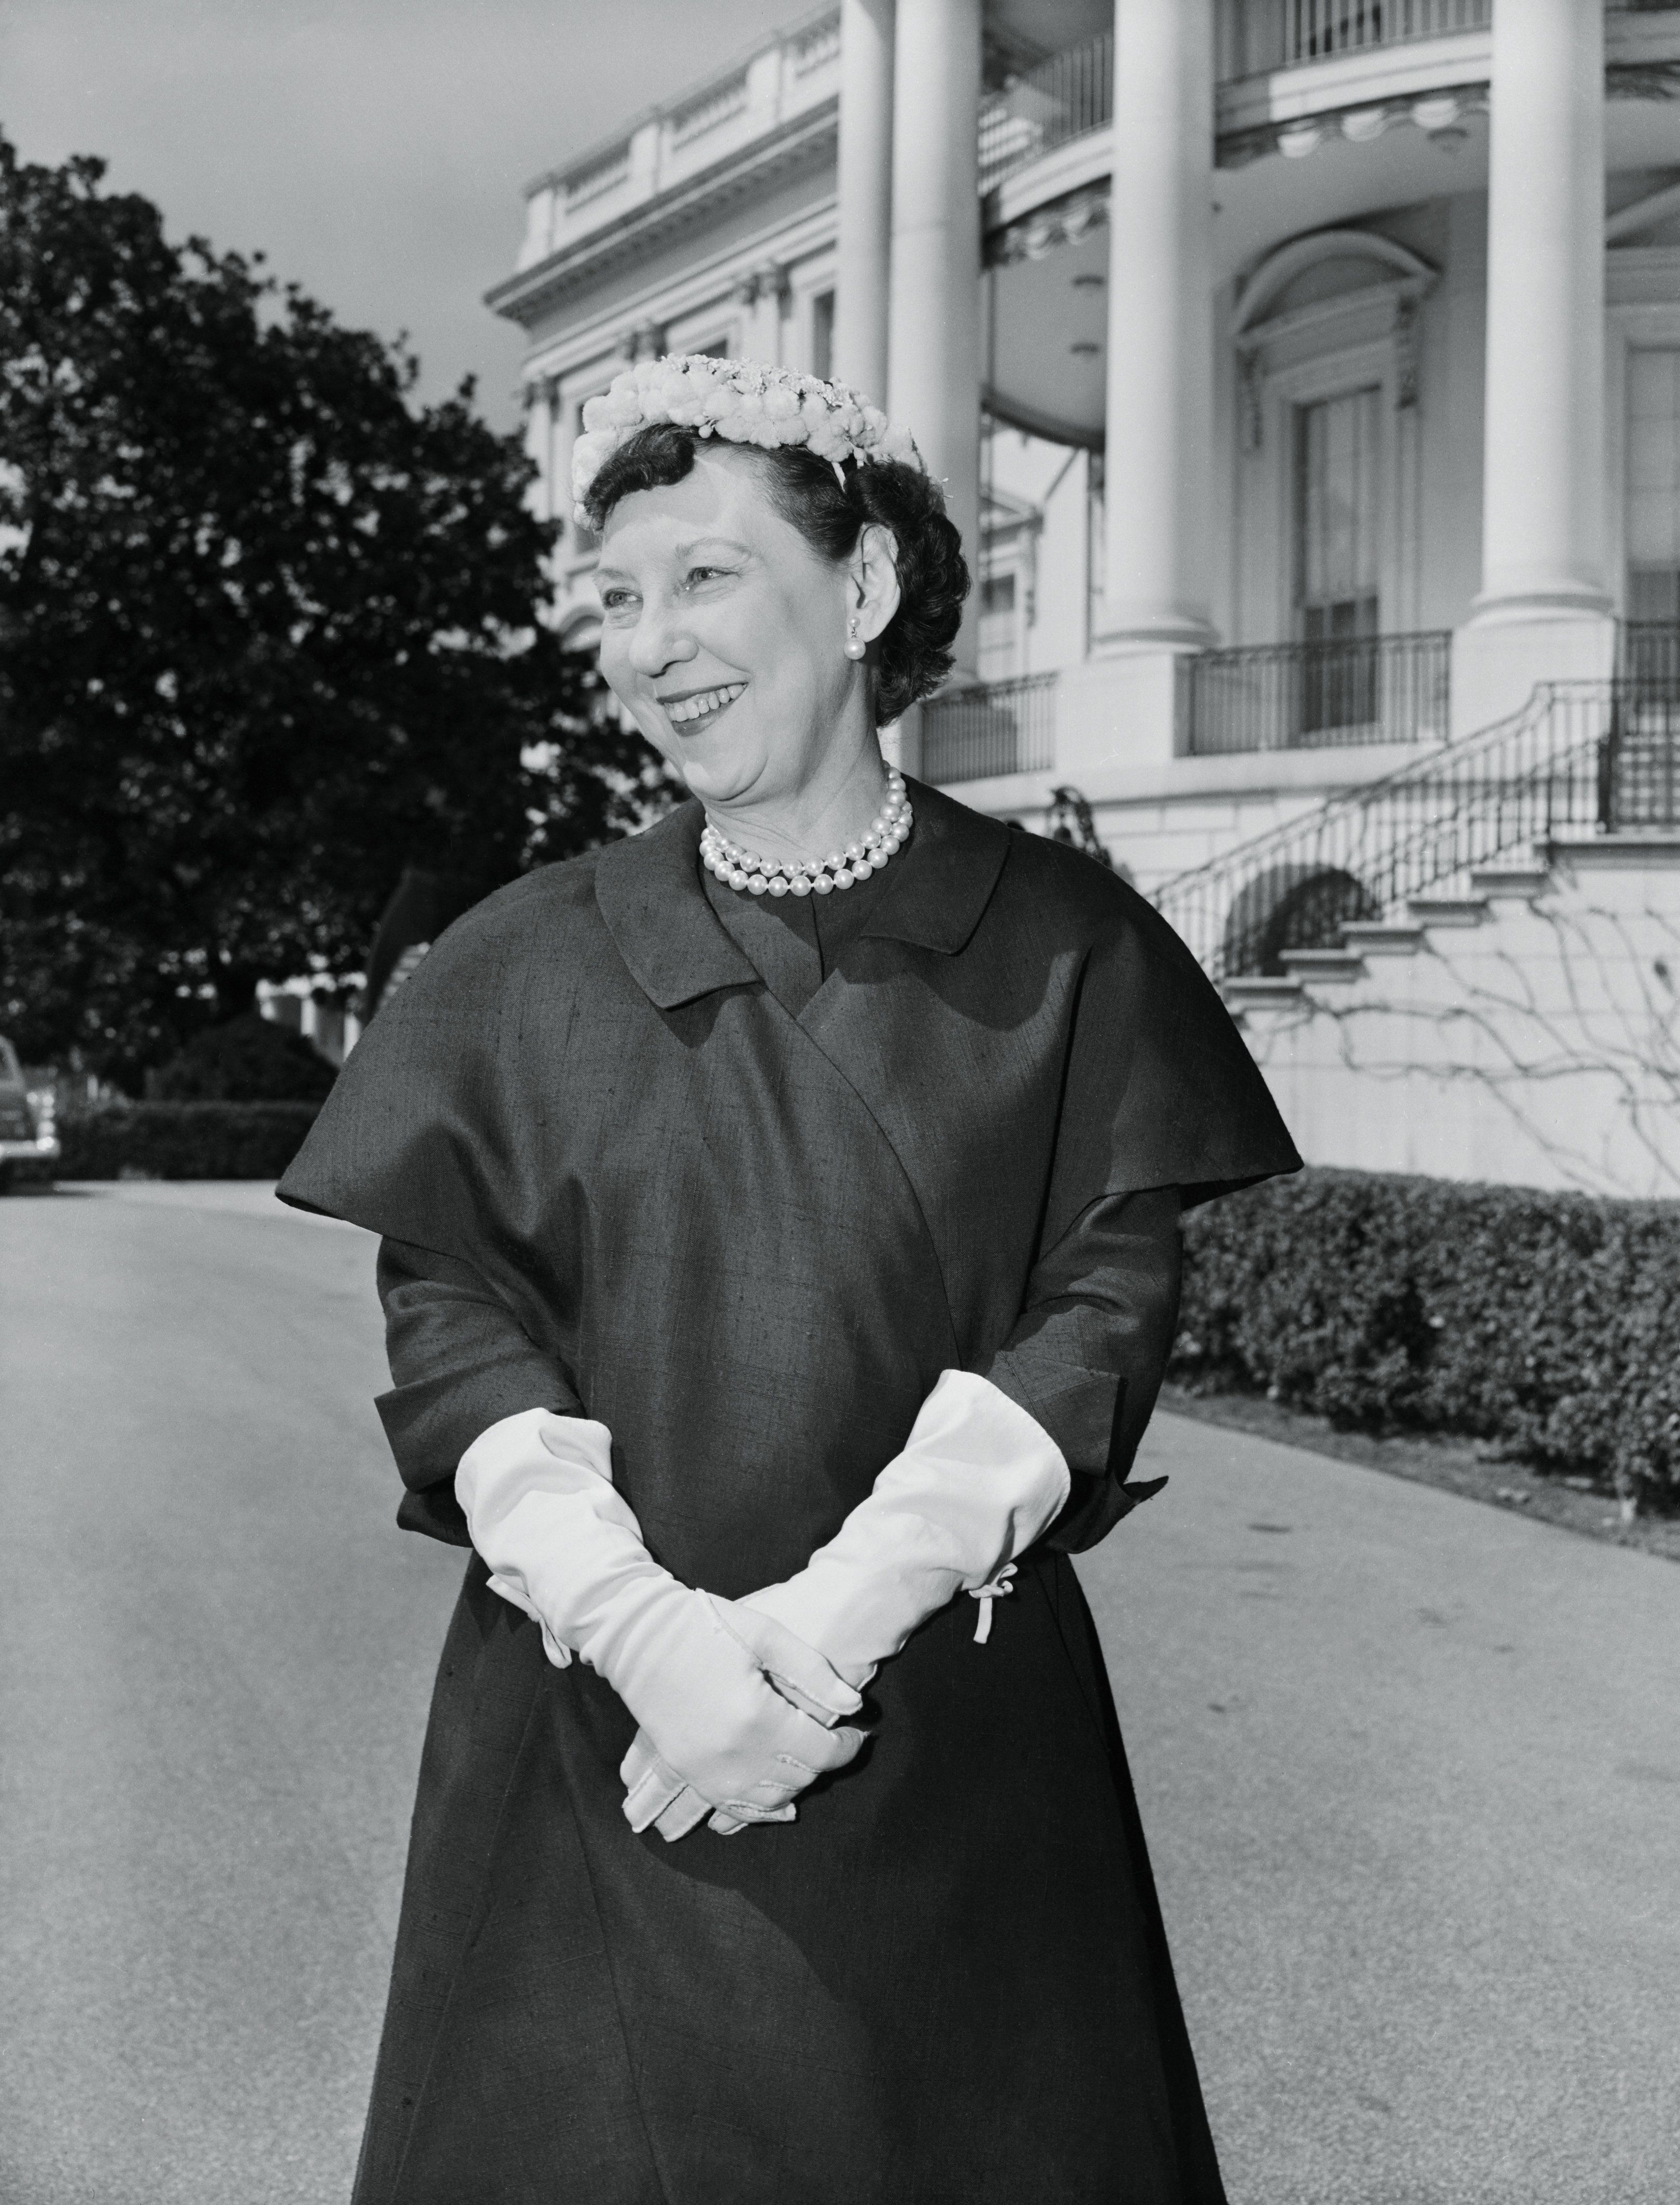 """Before there was millennial pink, there was <a href=""""http://savethepinkbathrooms.com/why-mamie-eisenhower-loved-pink-more-ins"""